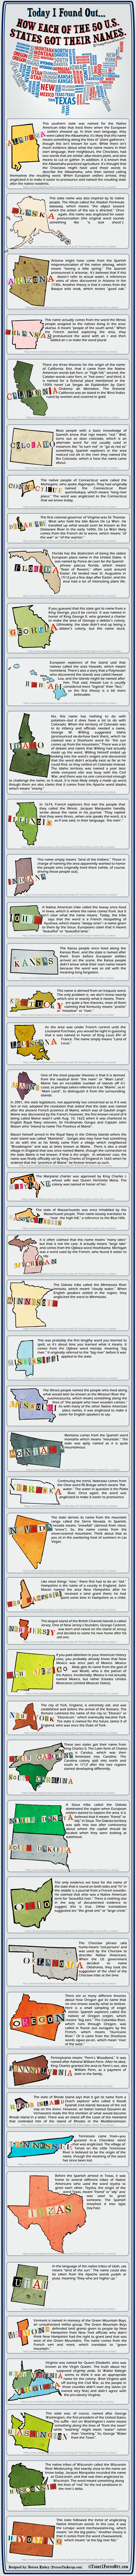 how-us-states-got-their-names